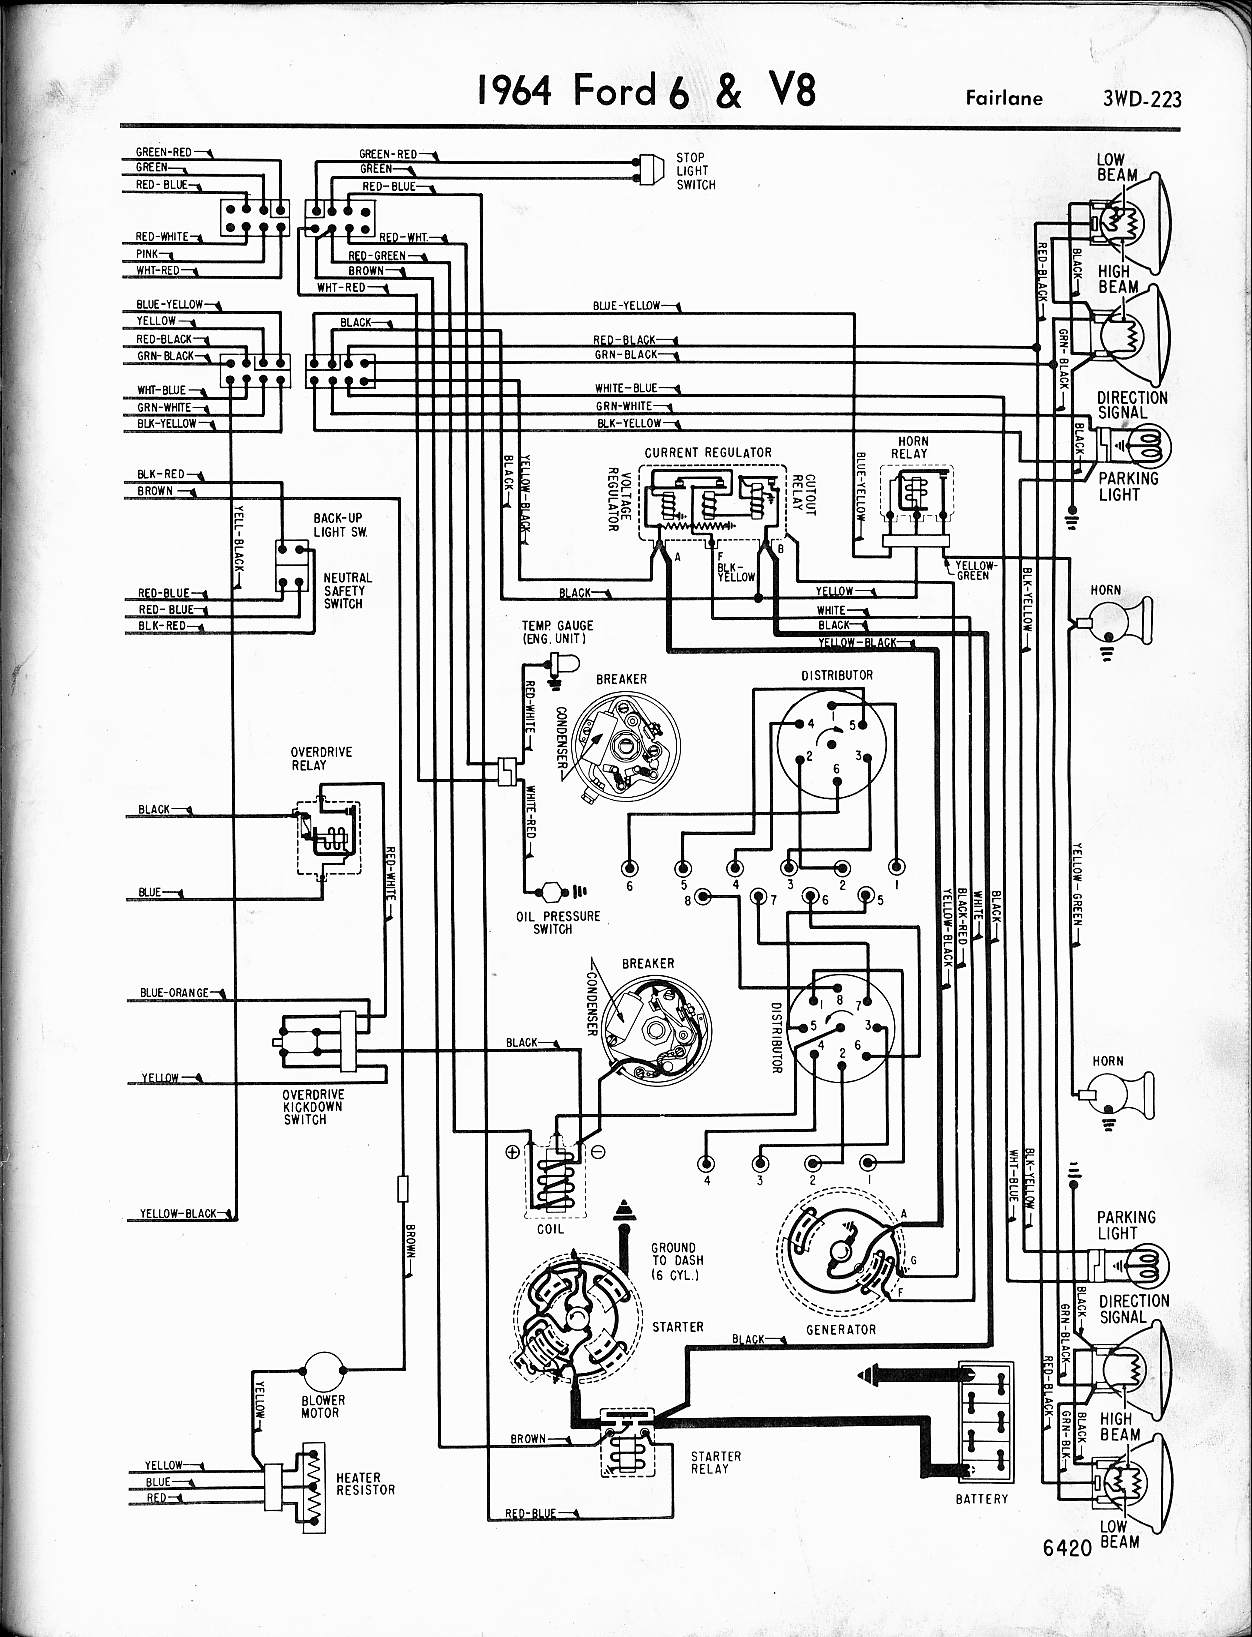 MWire5765 223 57 65 ford wiring diagrams 1966 ford fairlane wiring diagram at gsmportal.co